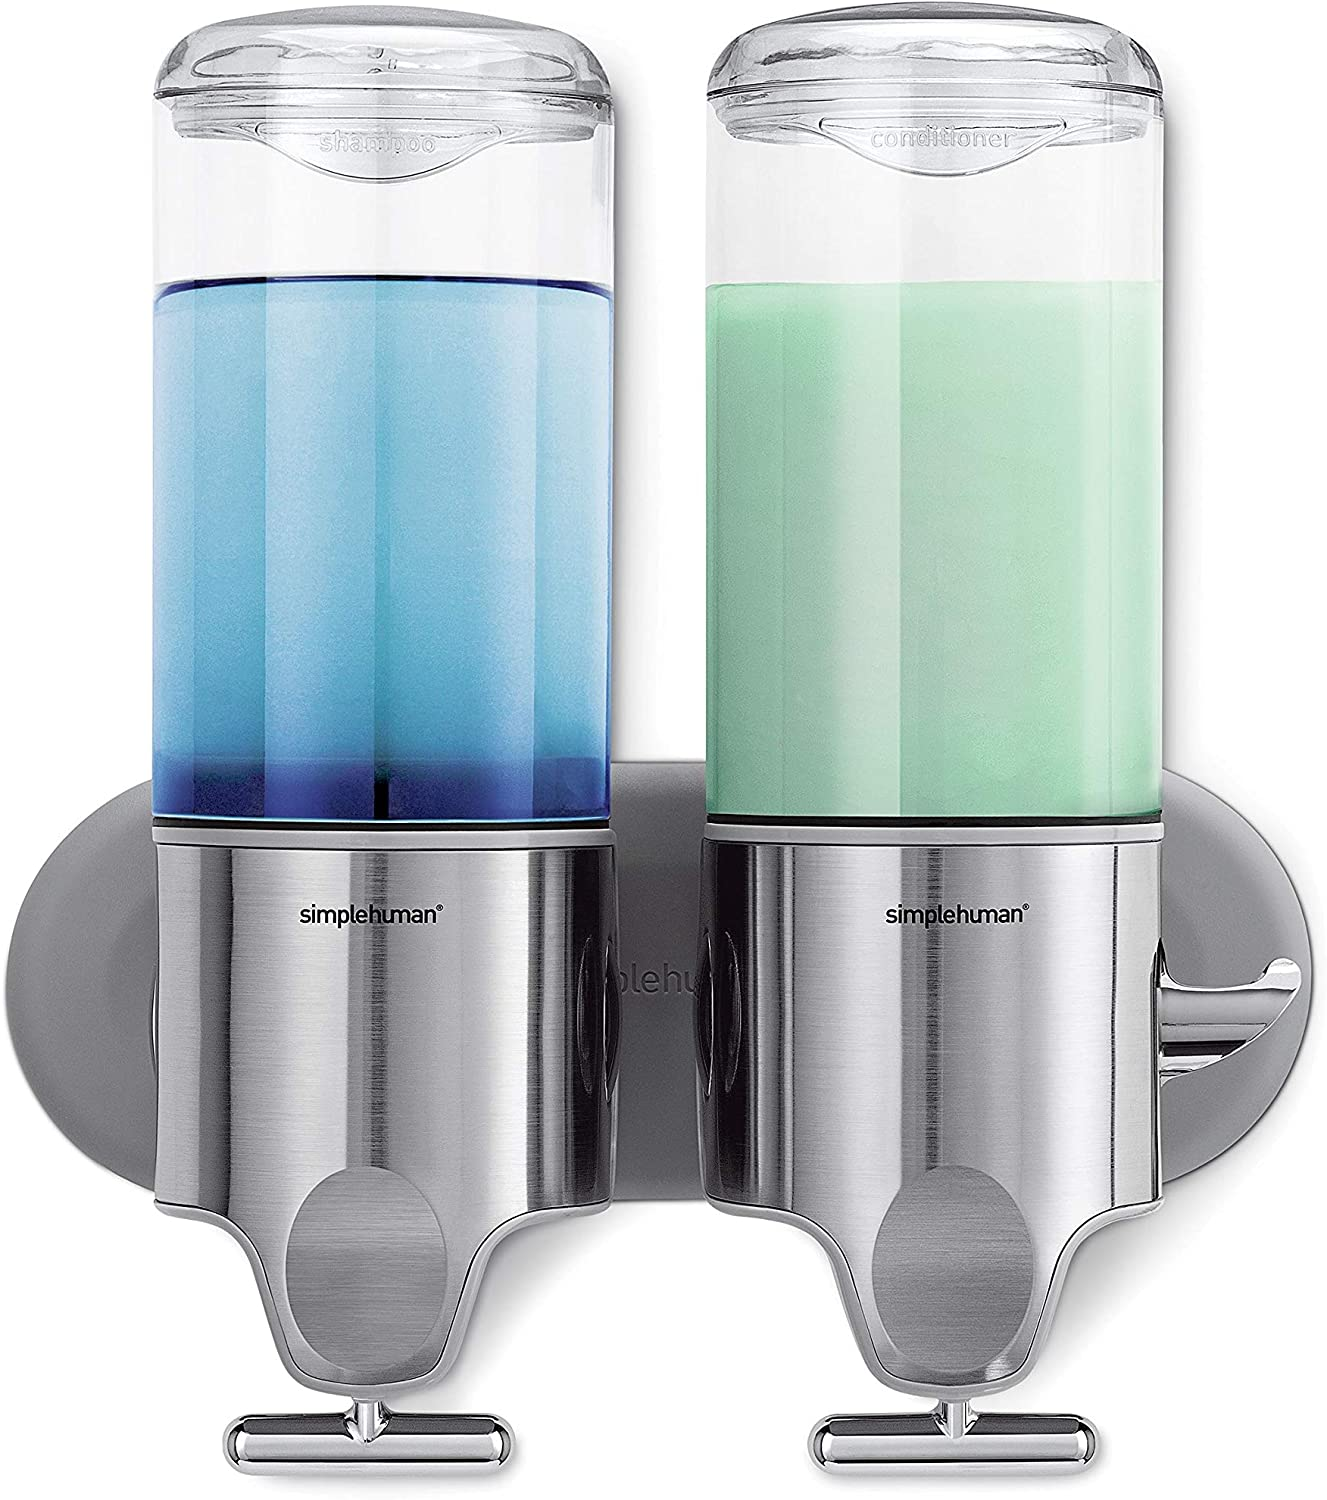 simplehuman Double Wall Mount Shower Pump, 2 x 15 fl. oz. Shampoo and Soap Dispensers, Stainless Steel